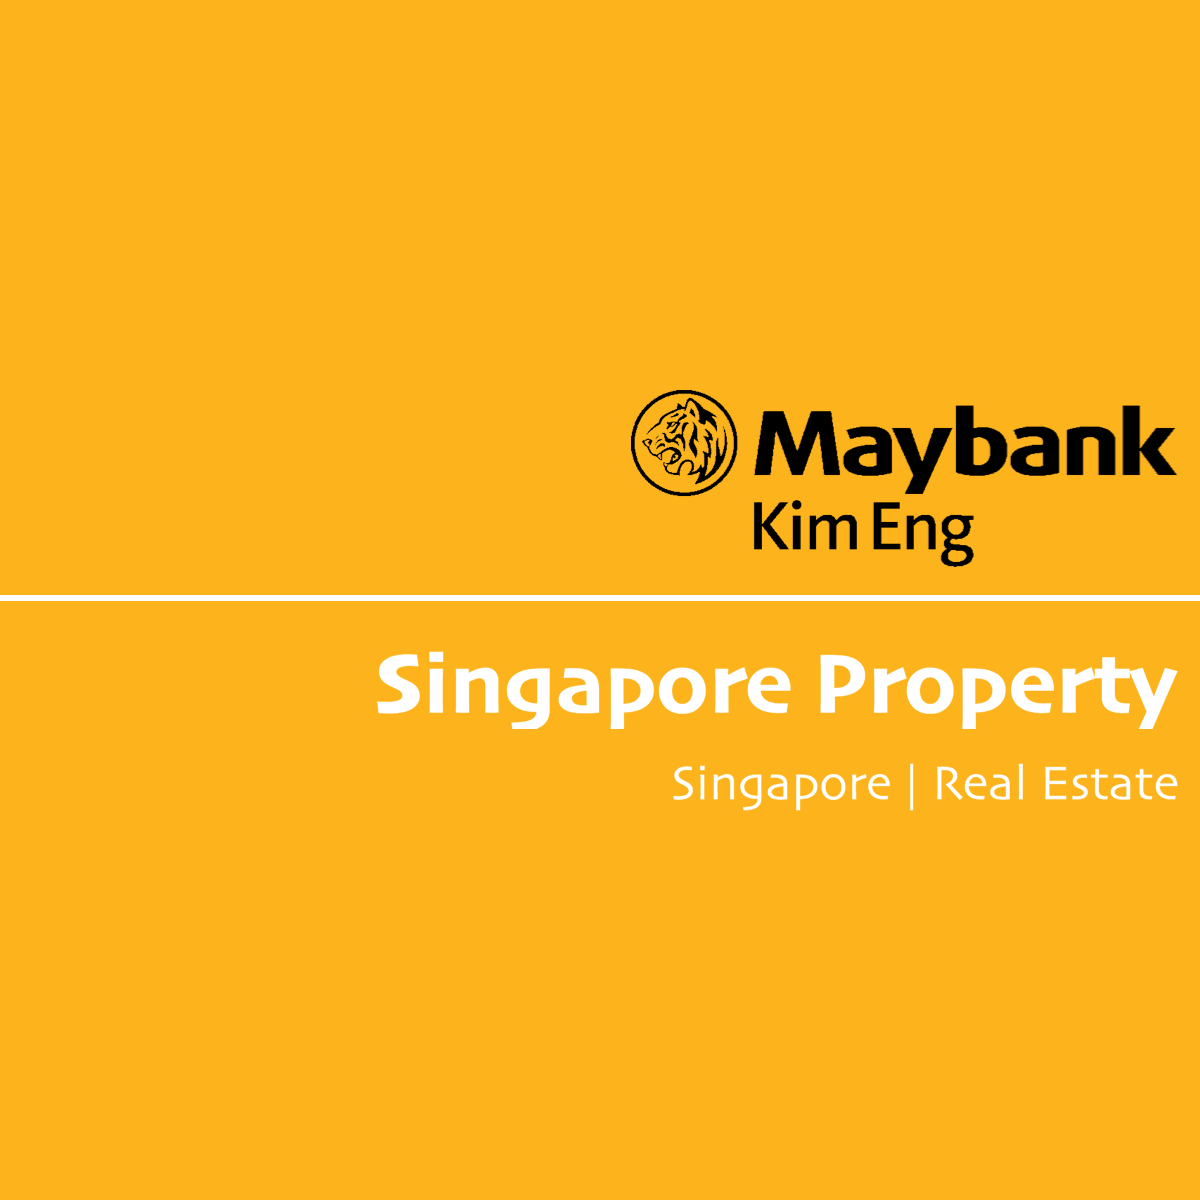 Singapore Property - Maybank Kim Eng 2017-01-11: Trend of narrowing margins could continue